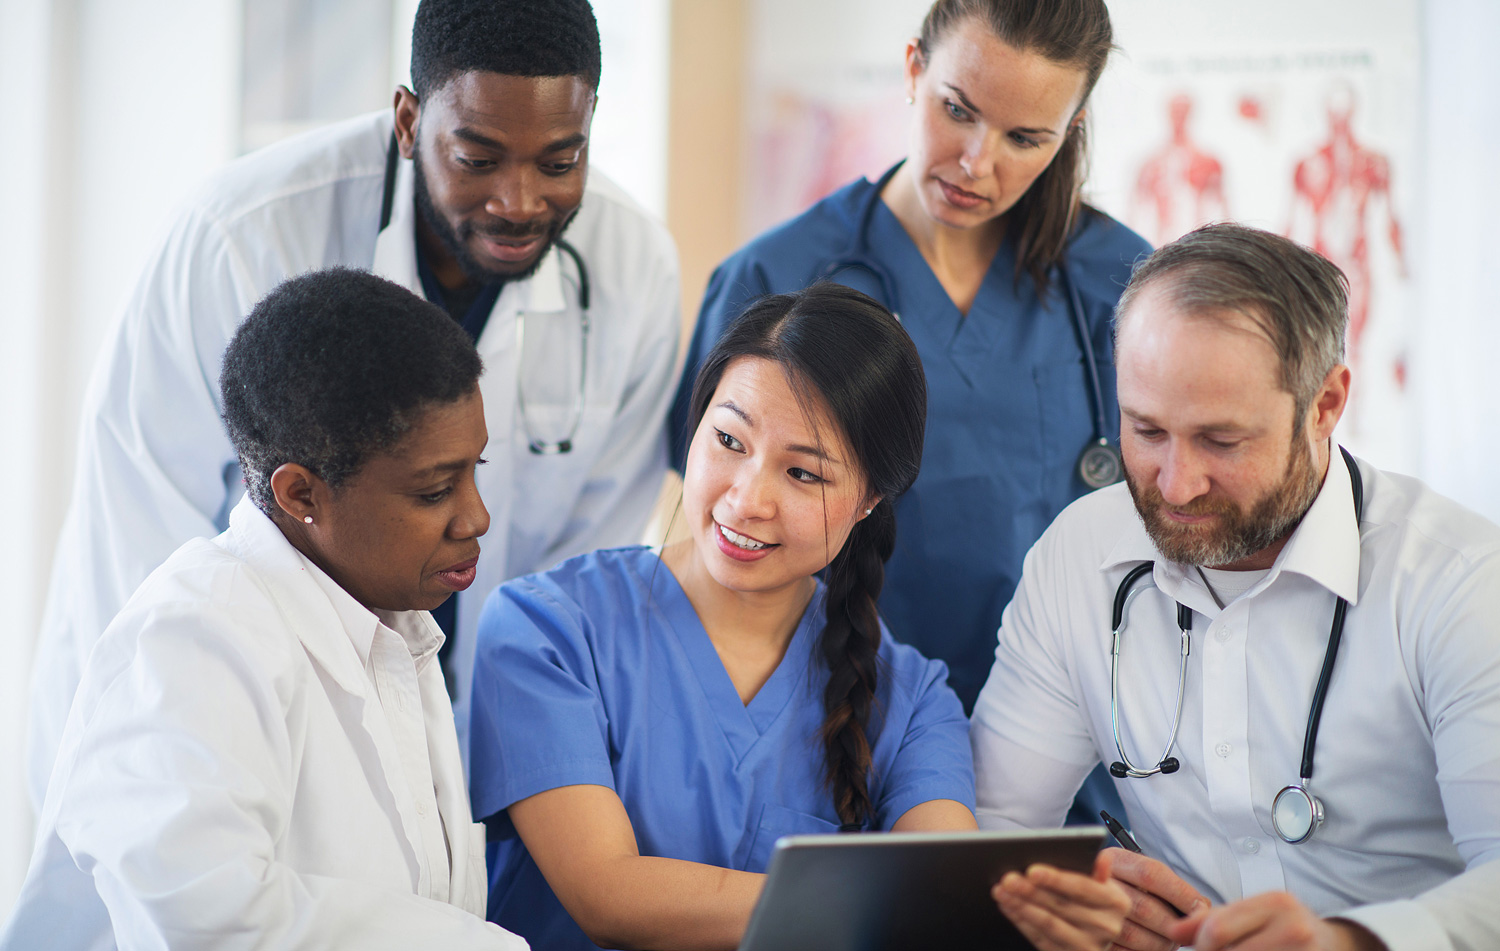 Nurse explaining medical results to doctos and medical professionals